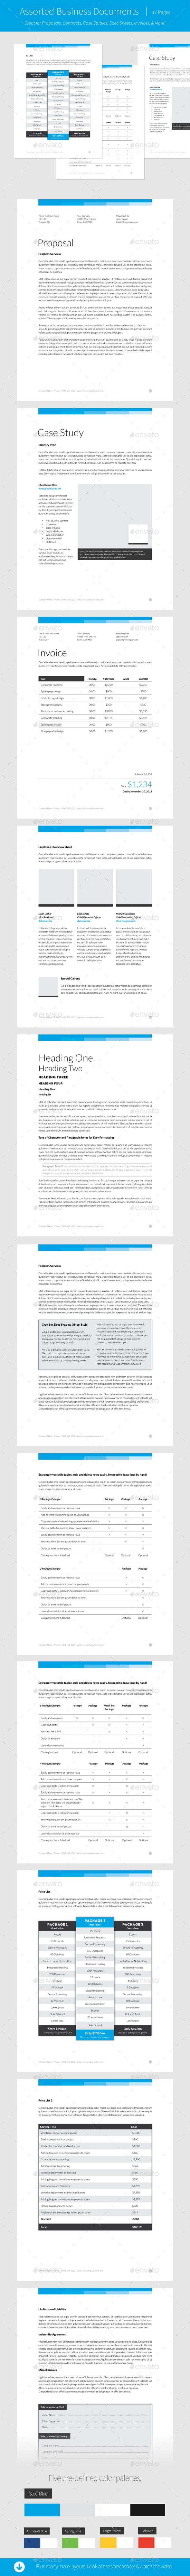 Simply Premium   Indesign Template  Indesign Templates